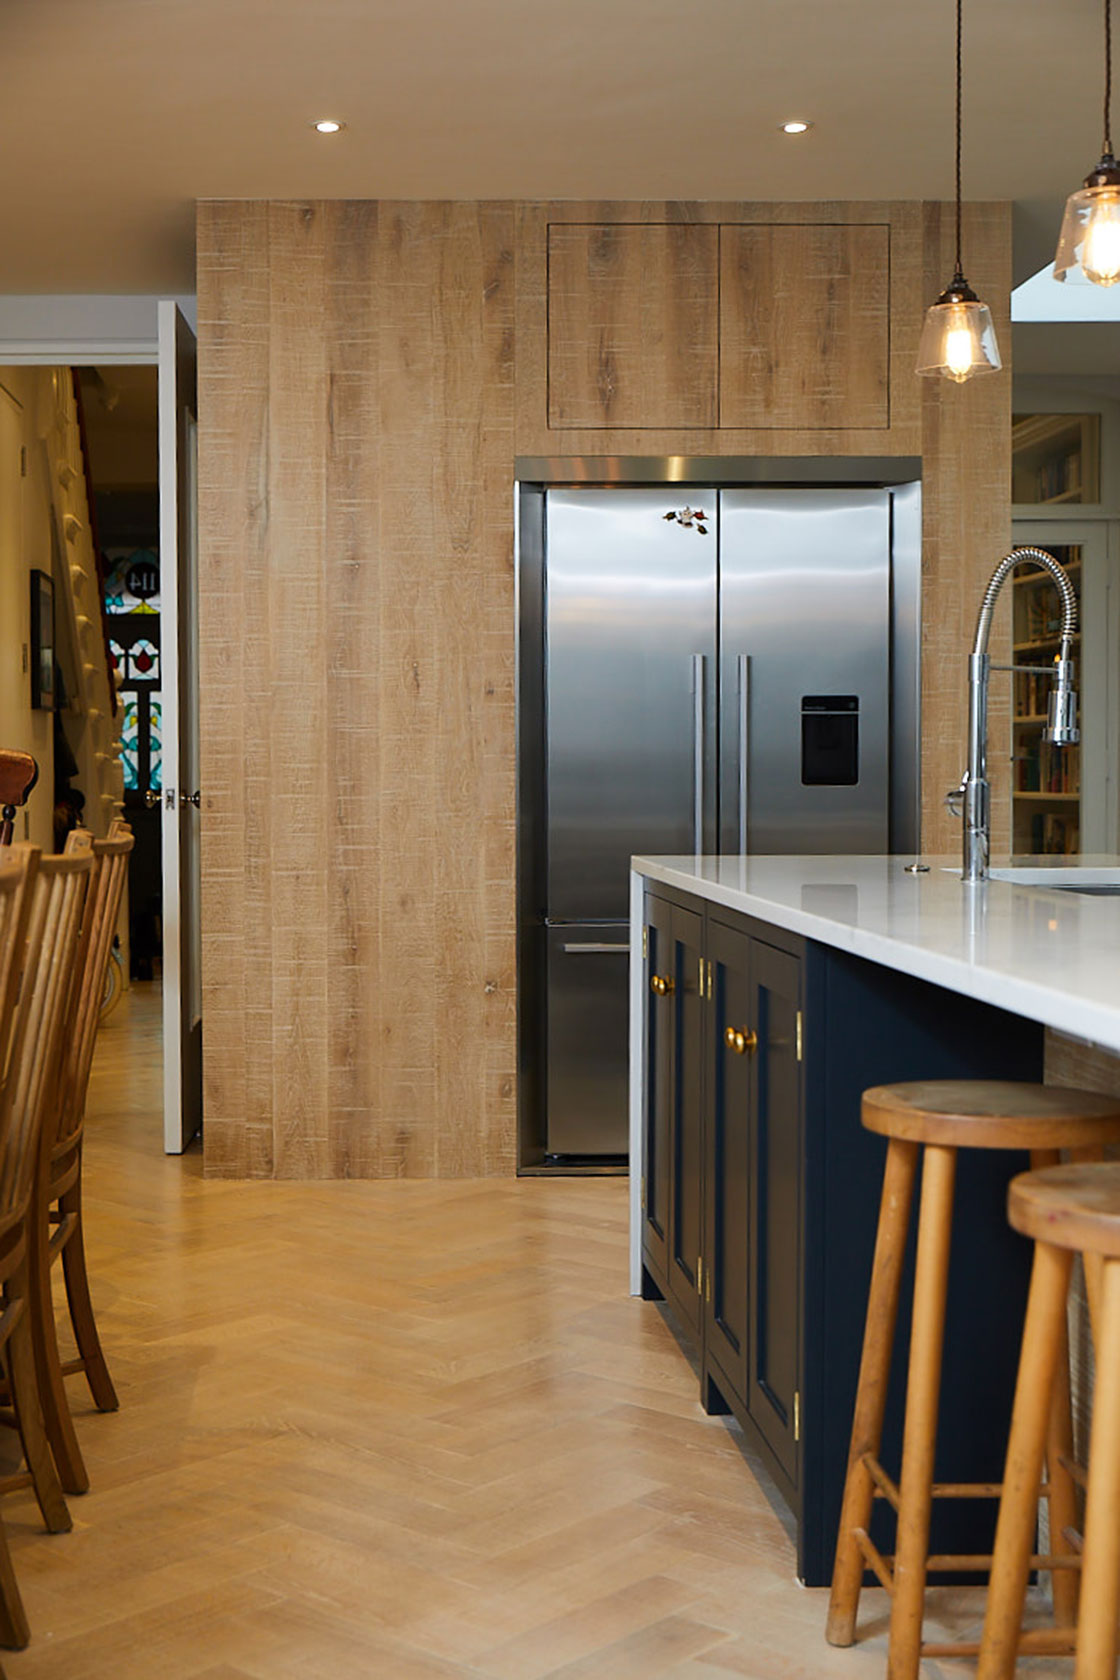 American Fisher & Paykel fridge freezer with surround in large limed oak kitchen units